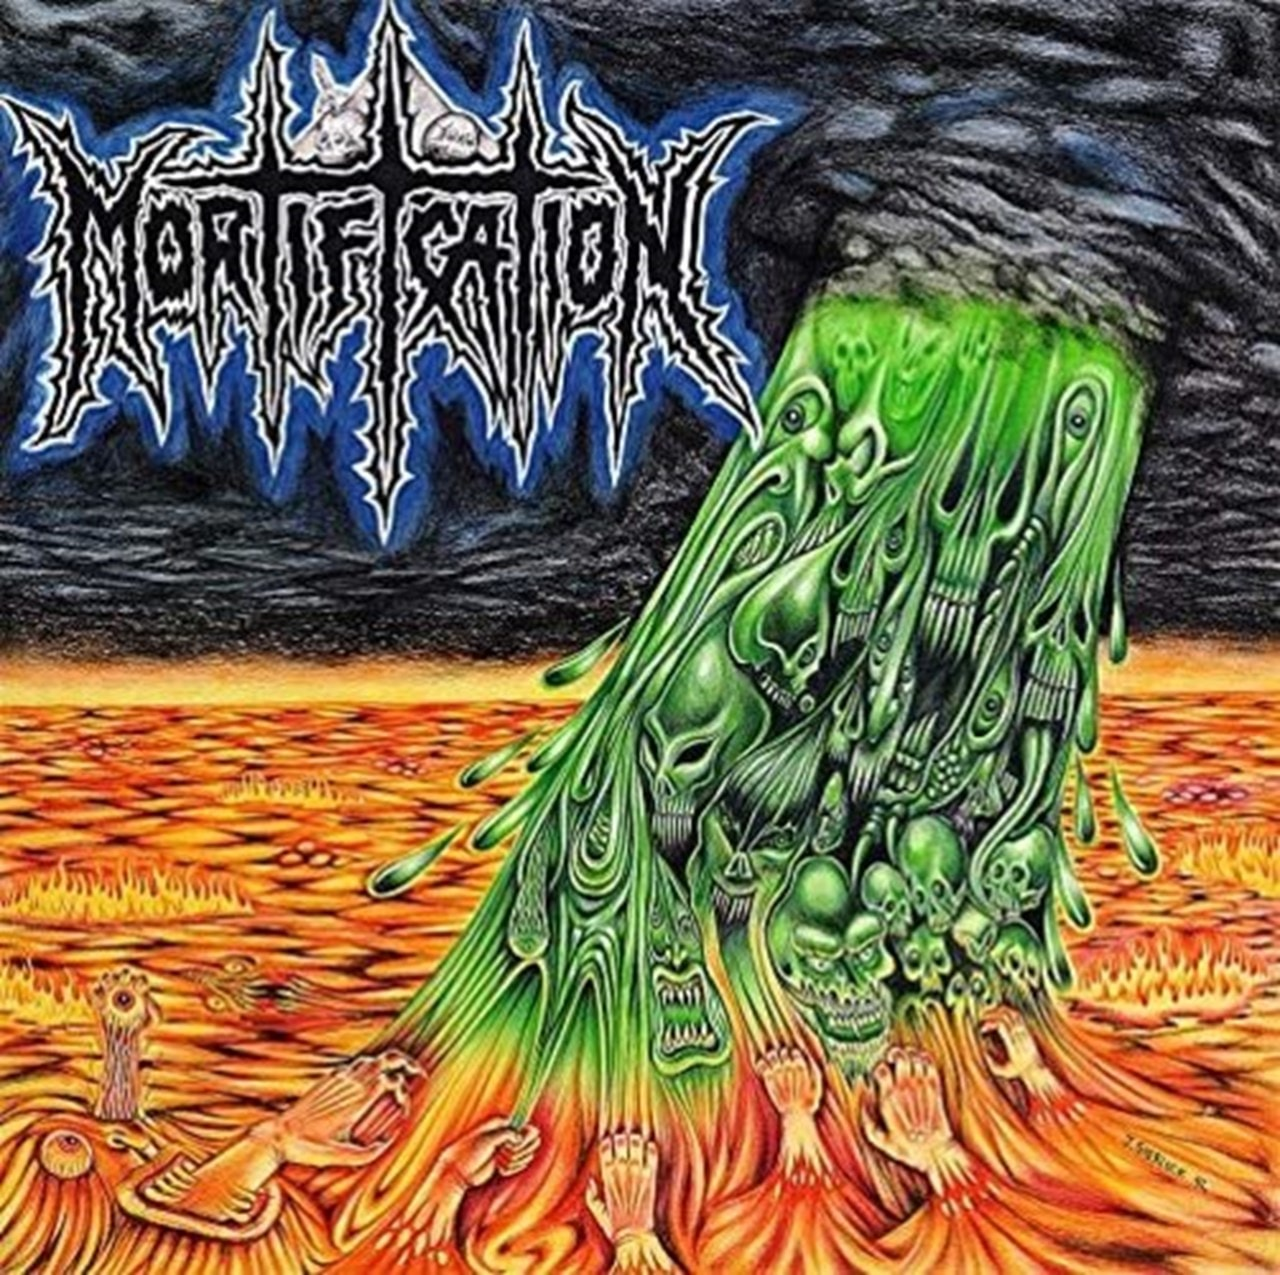 Mortification - 1